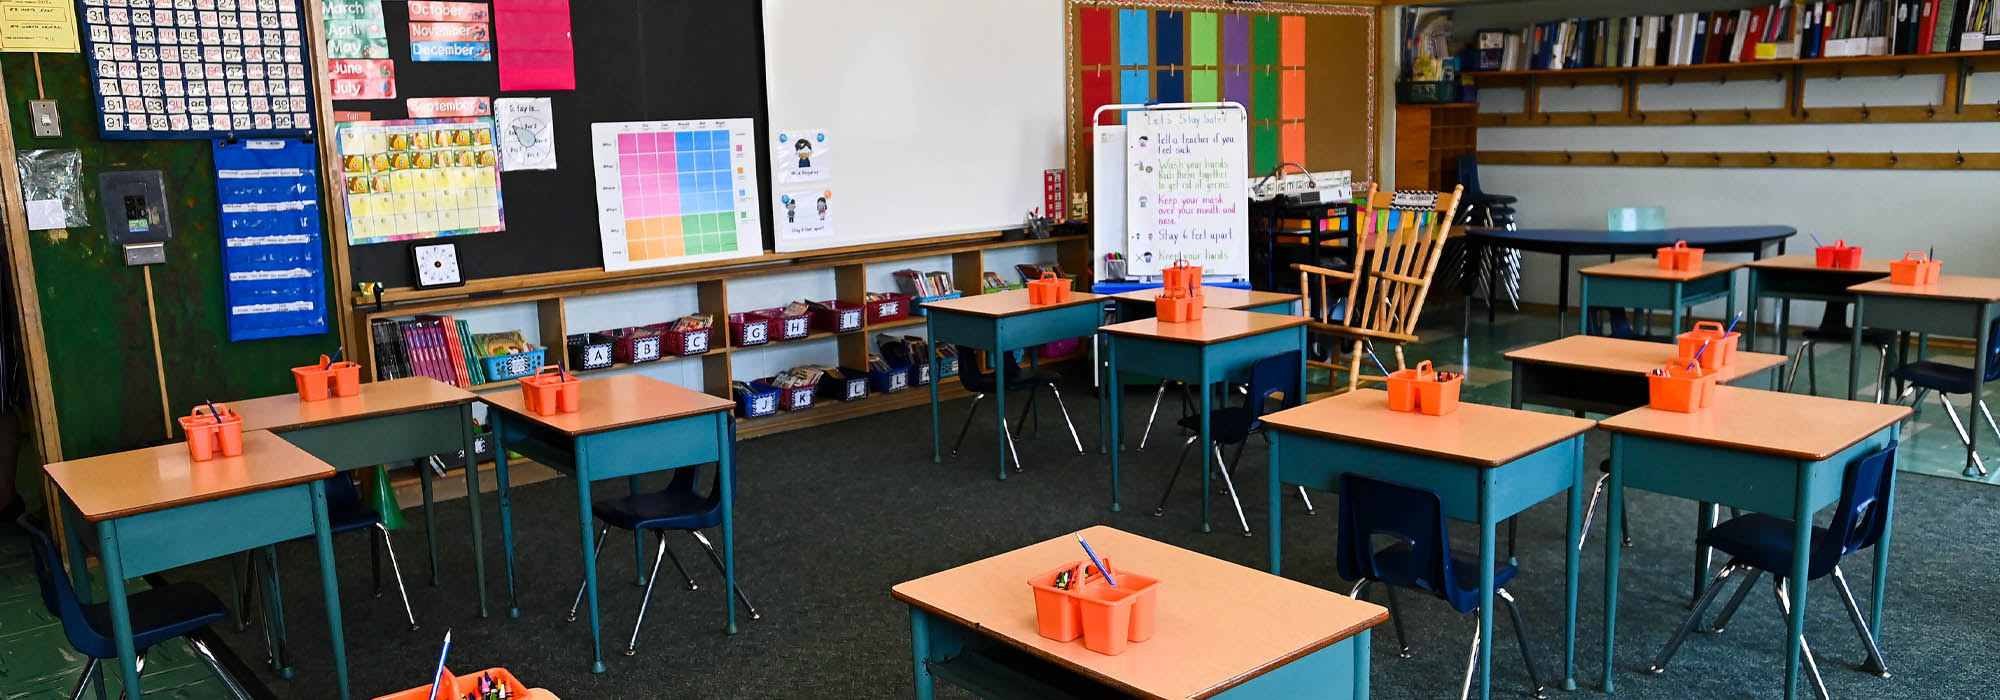 A grade two classroom is shown at Hunter's Glen Junior Public School which is part of the Toronto District School Board (TDSB)